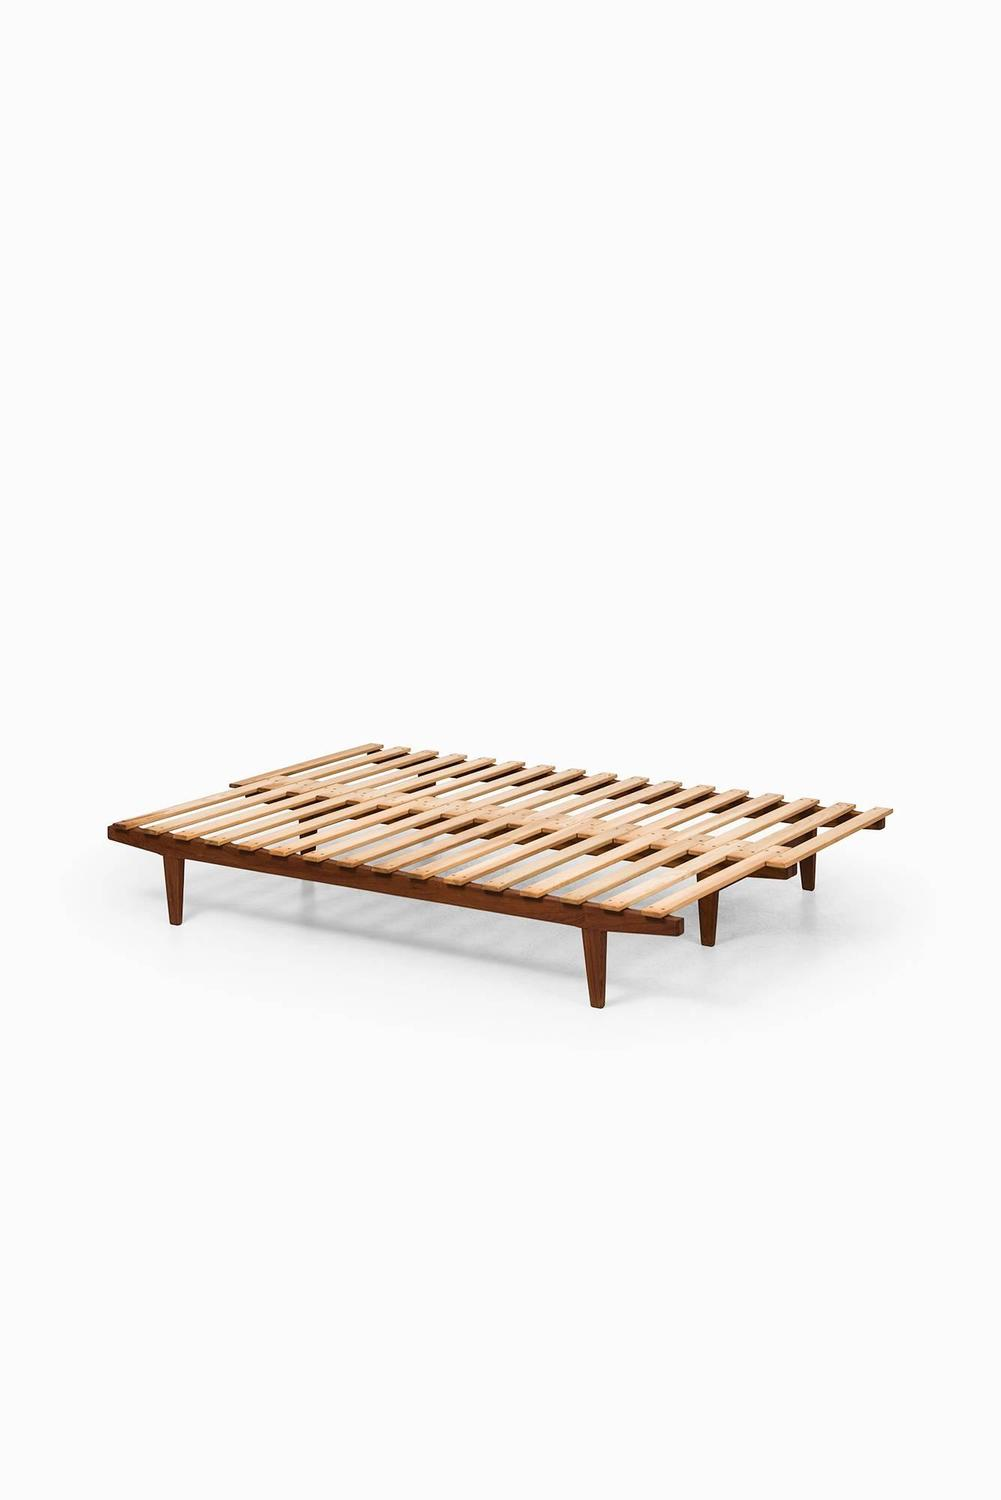 Ib hylander daybed or bench by s ren horn in denmark for Daybed bench